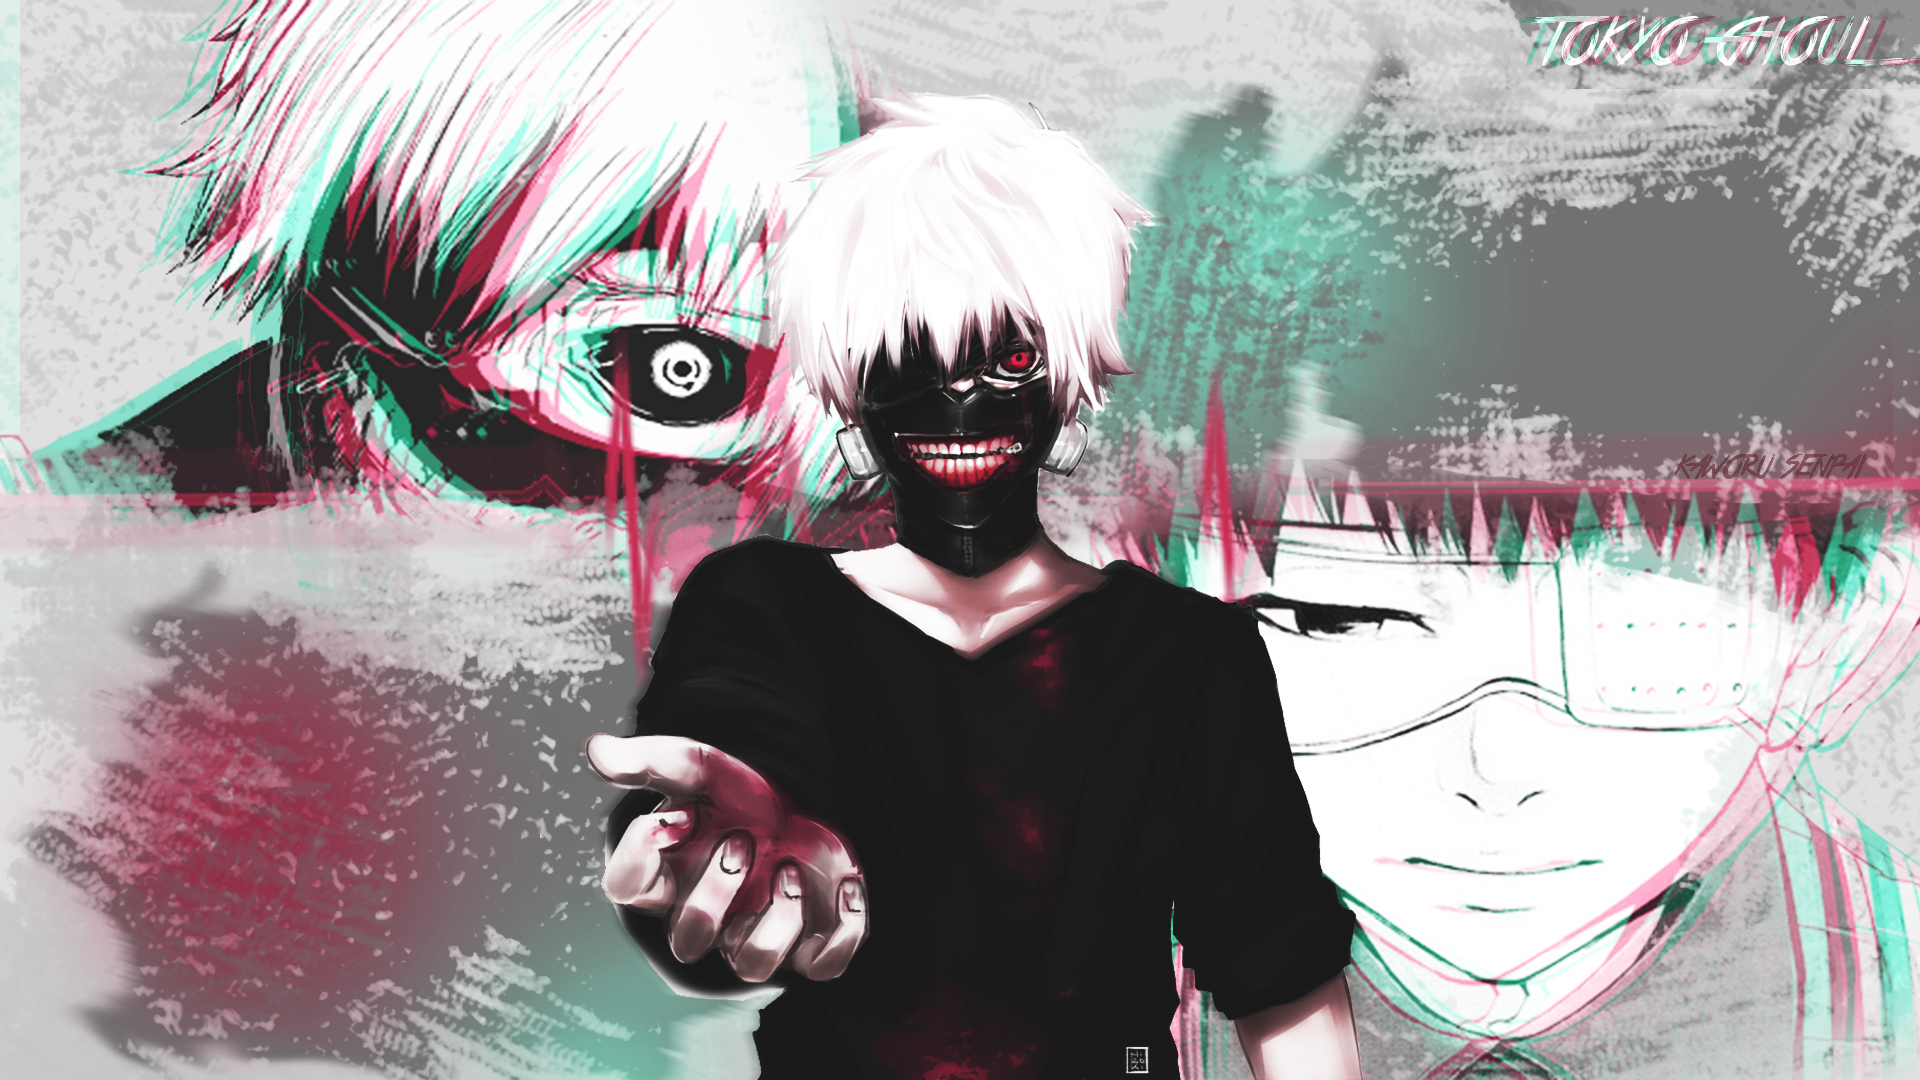 Joker Wallpaper Iphone Tokyo Ghoul Wallpapers High Quality Download Free